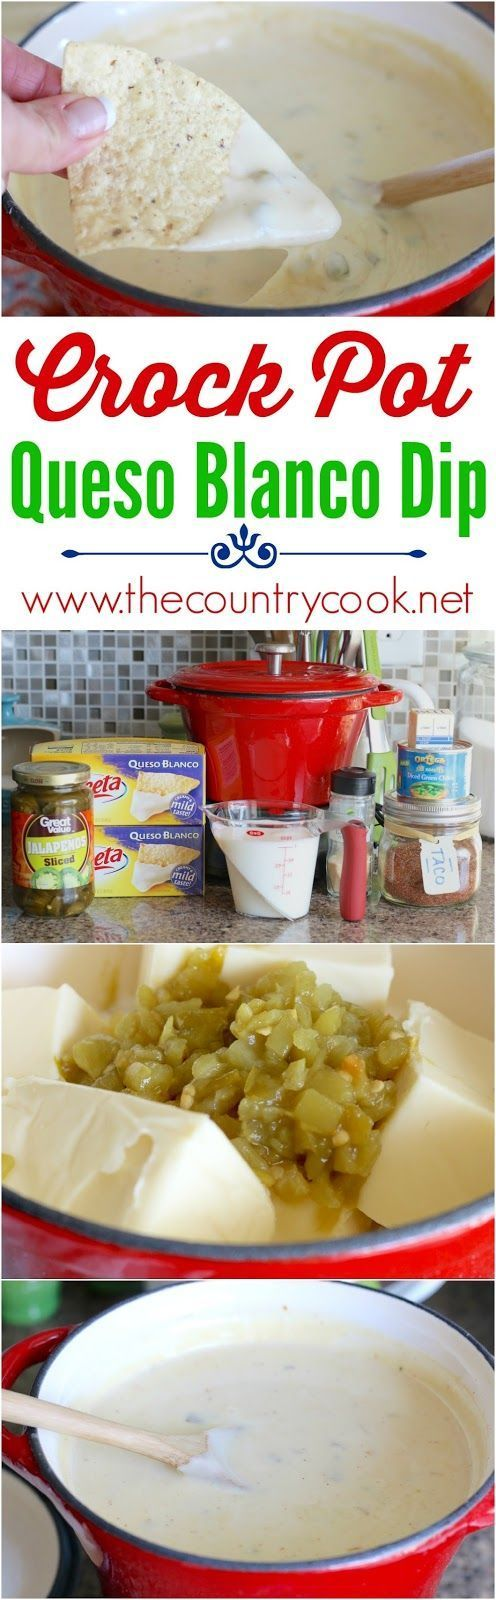 Crock Pot White Queso Dip recipe from The Country Cook. Just like my favorite Mexican restaurant but, I think, even better! Goes perfect with tortilla chips or on smothered burritos!